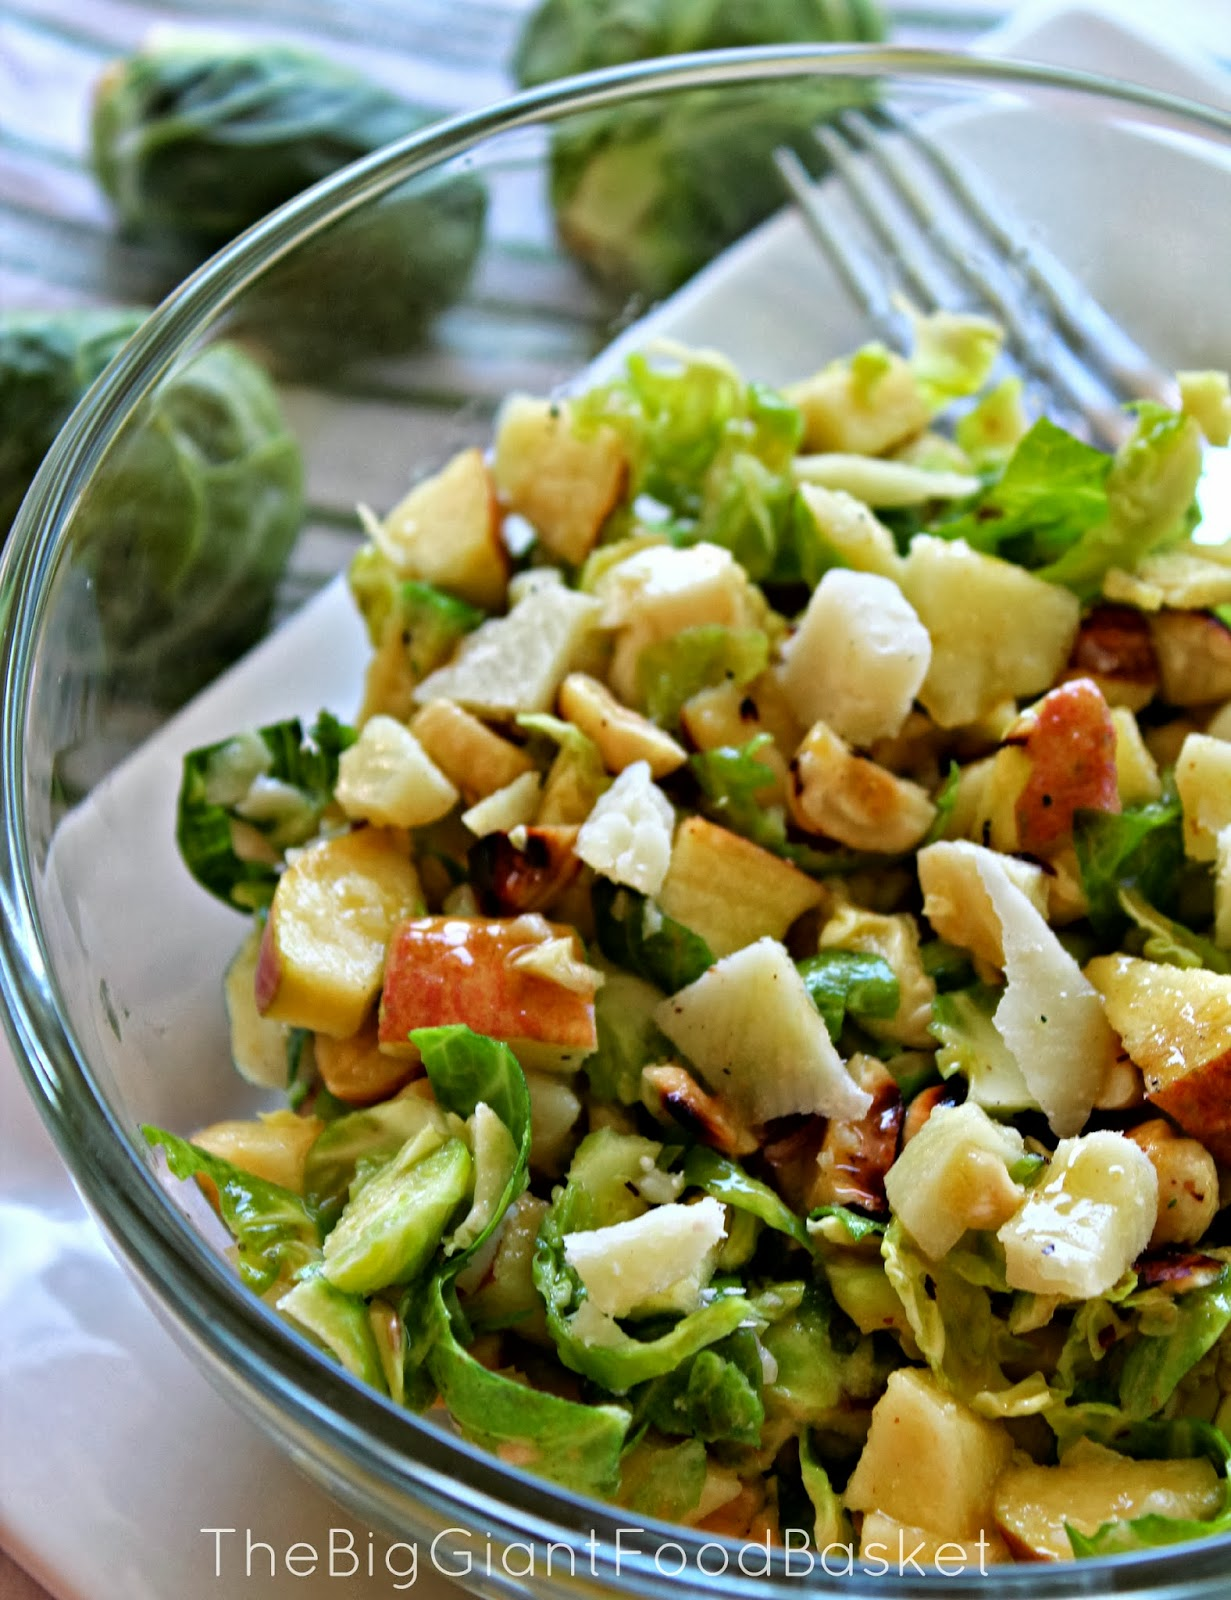 The Big Giant Food Basket: Delicate Brussels Sprouts Salad